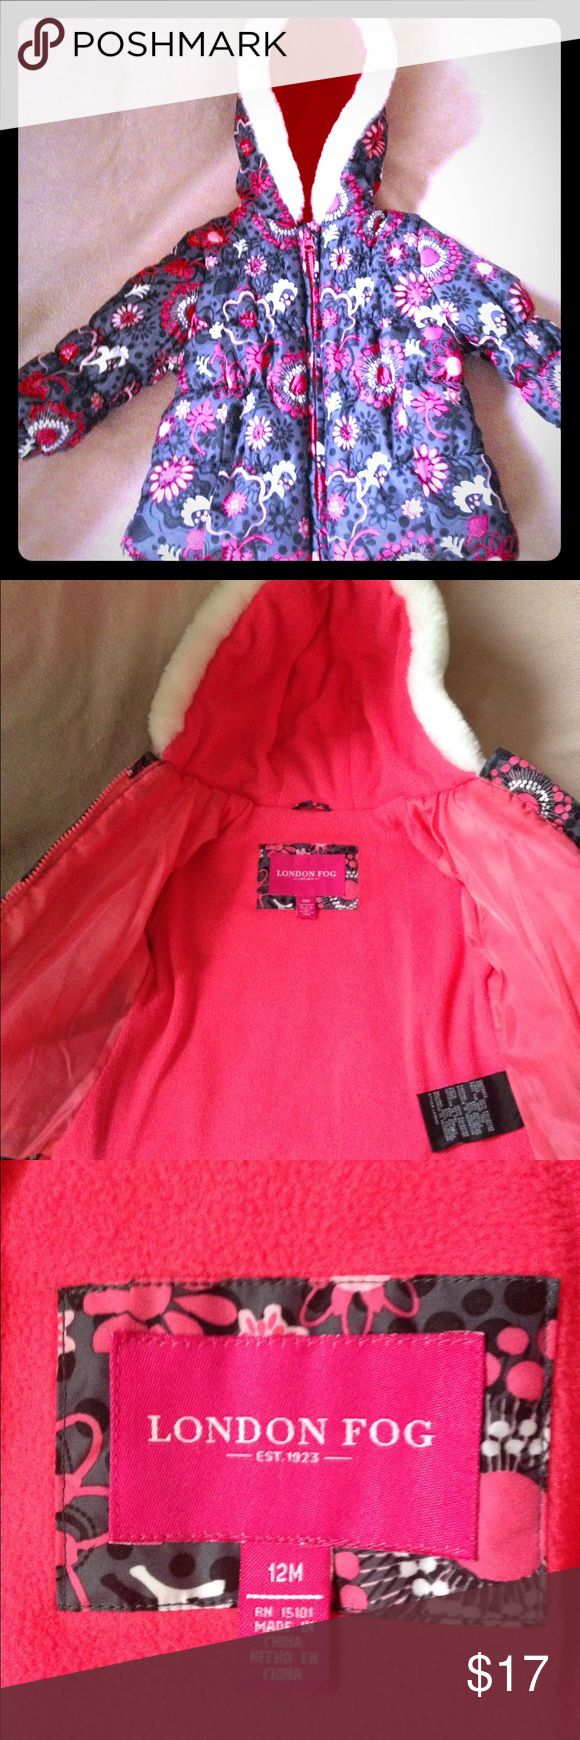 """London Fog"" Baby Girl Winter Coat with Hood ""London Fog"" Baby Girl Winter Coat with beautiful pink, black & white floral print. Pink fleece on the inside and puffy on the outside - LOTS of warmth. The hood is line with white faux fur. PERFECT CONDITION. Almost new. 12 months London Fog Jackets & Coats Puffers"